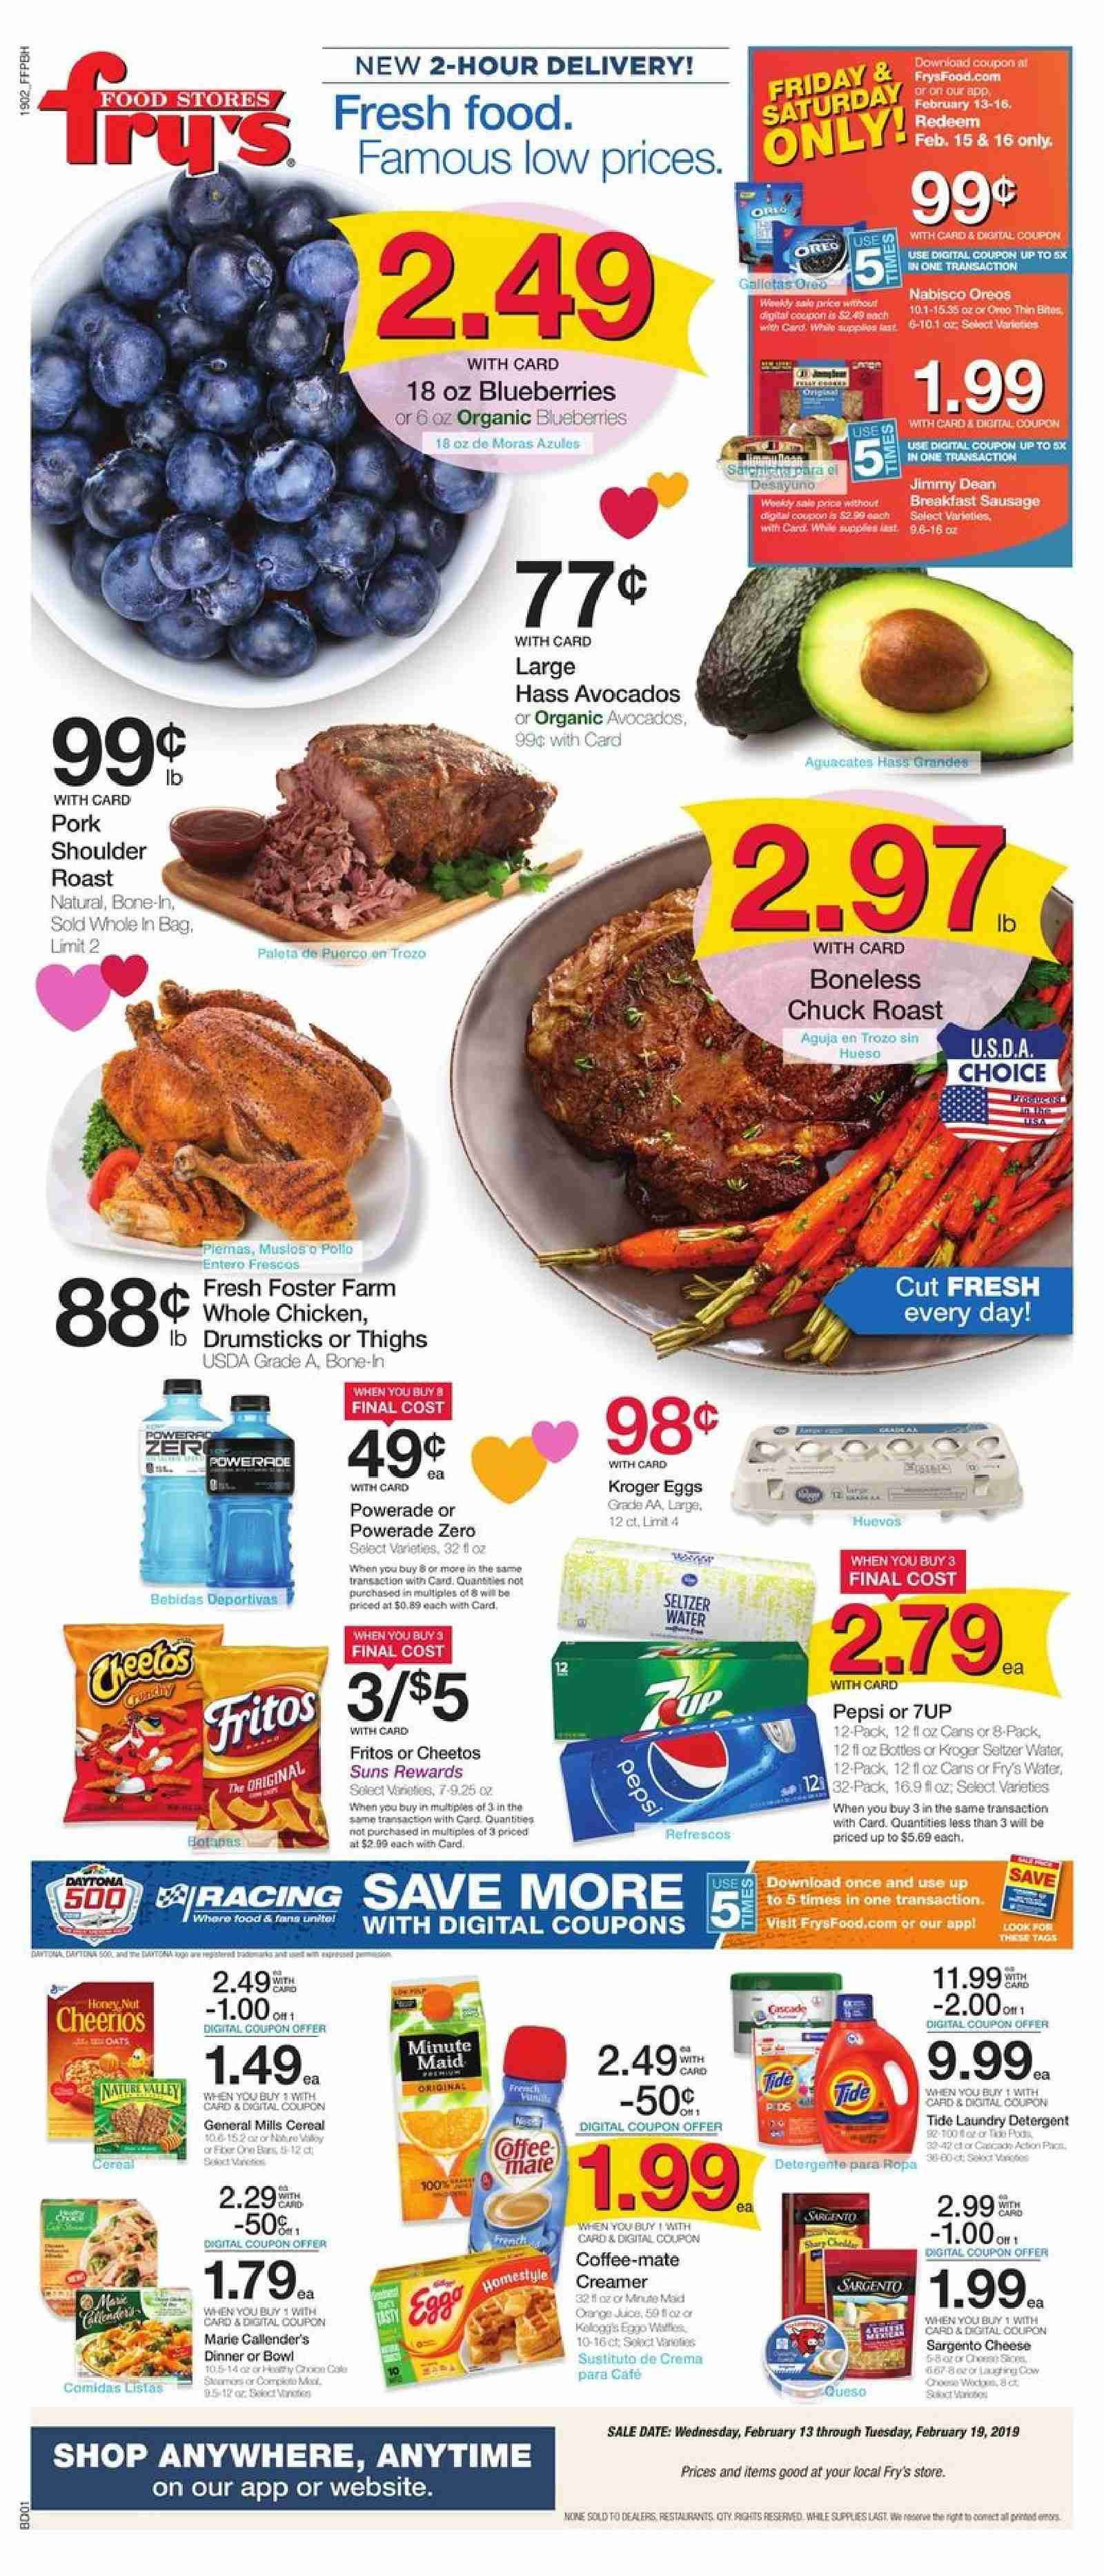 Fry's Flyer - 02.13.2019 - 02.19.2019 - Sales products - avocado, blueberries, Coffee-Mate, eggs, Cheetos, cereals, Fritos, Powerade, Pepsi, seltzer, water, whole chicken, chicken. Page 1.